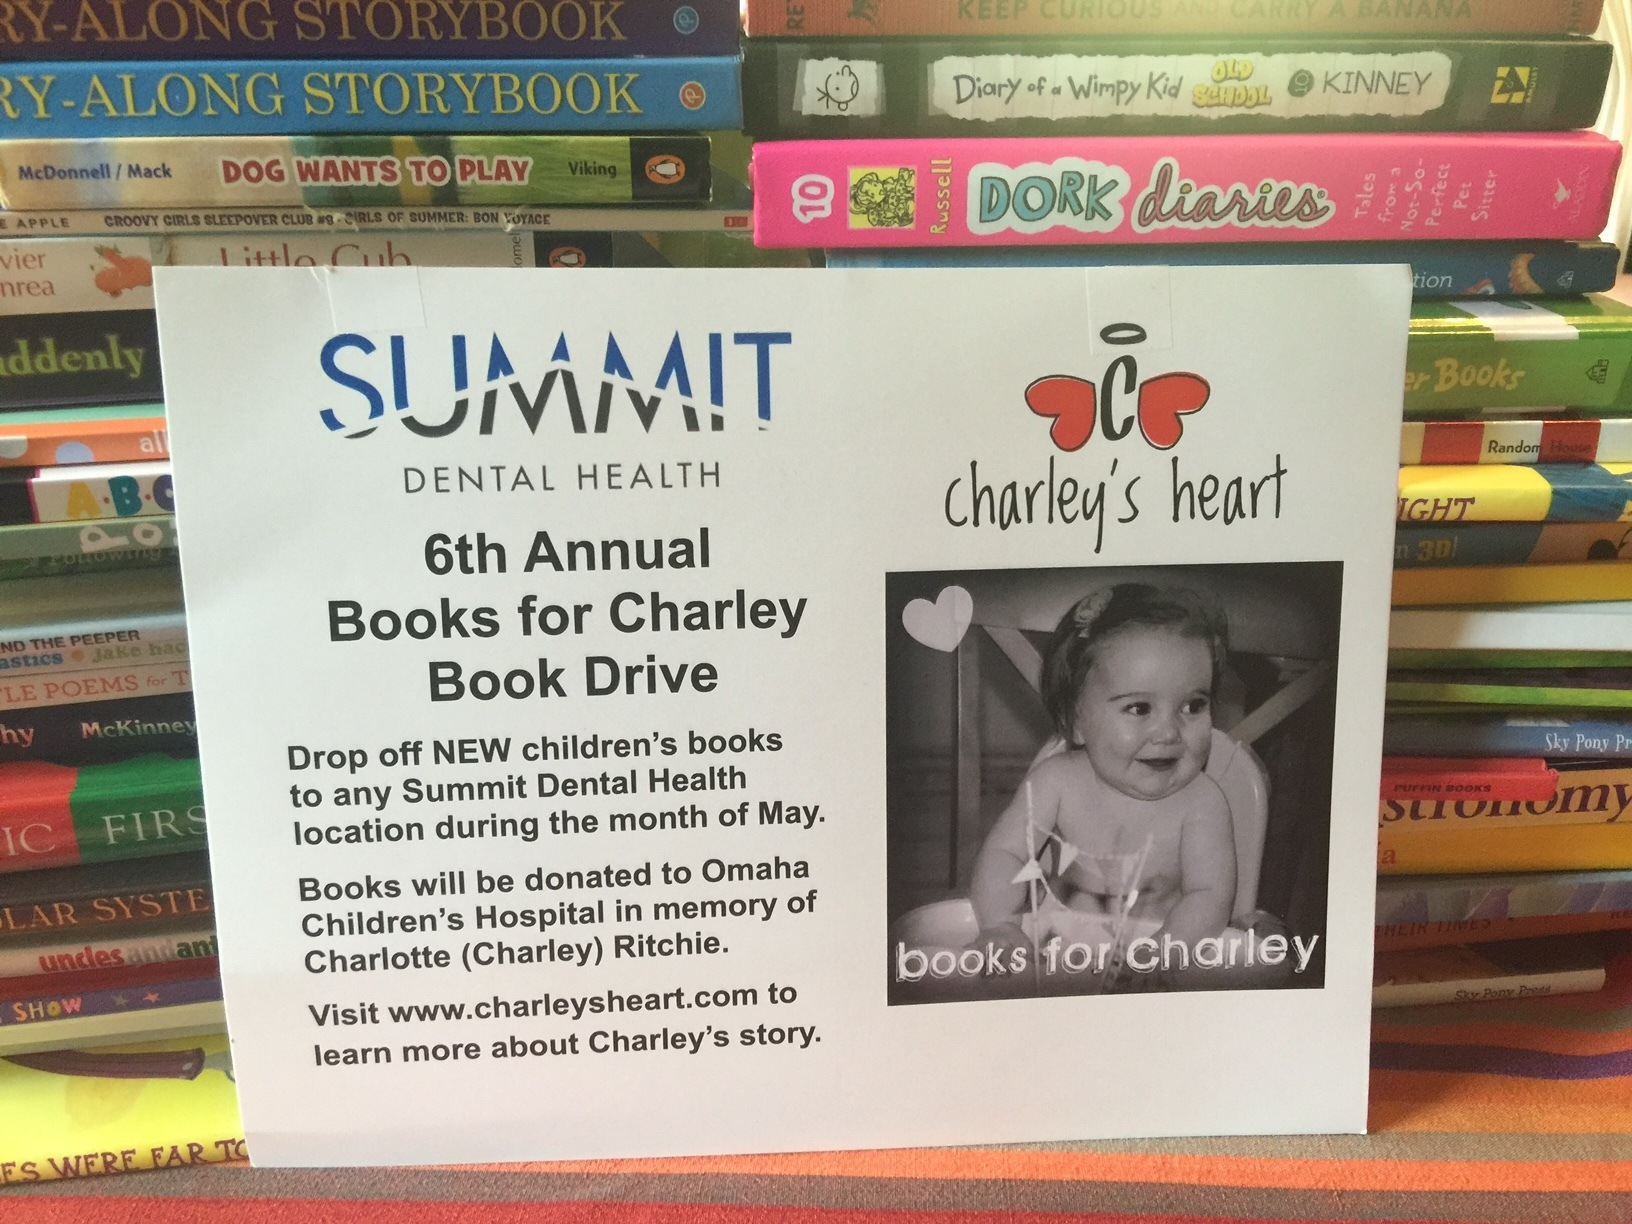 A sign for Summit Dental Health and Books for Charley sits in front of stacks of books